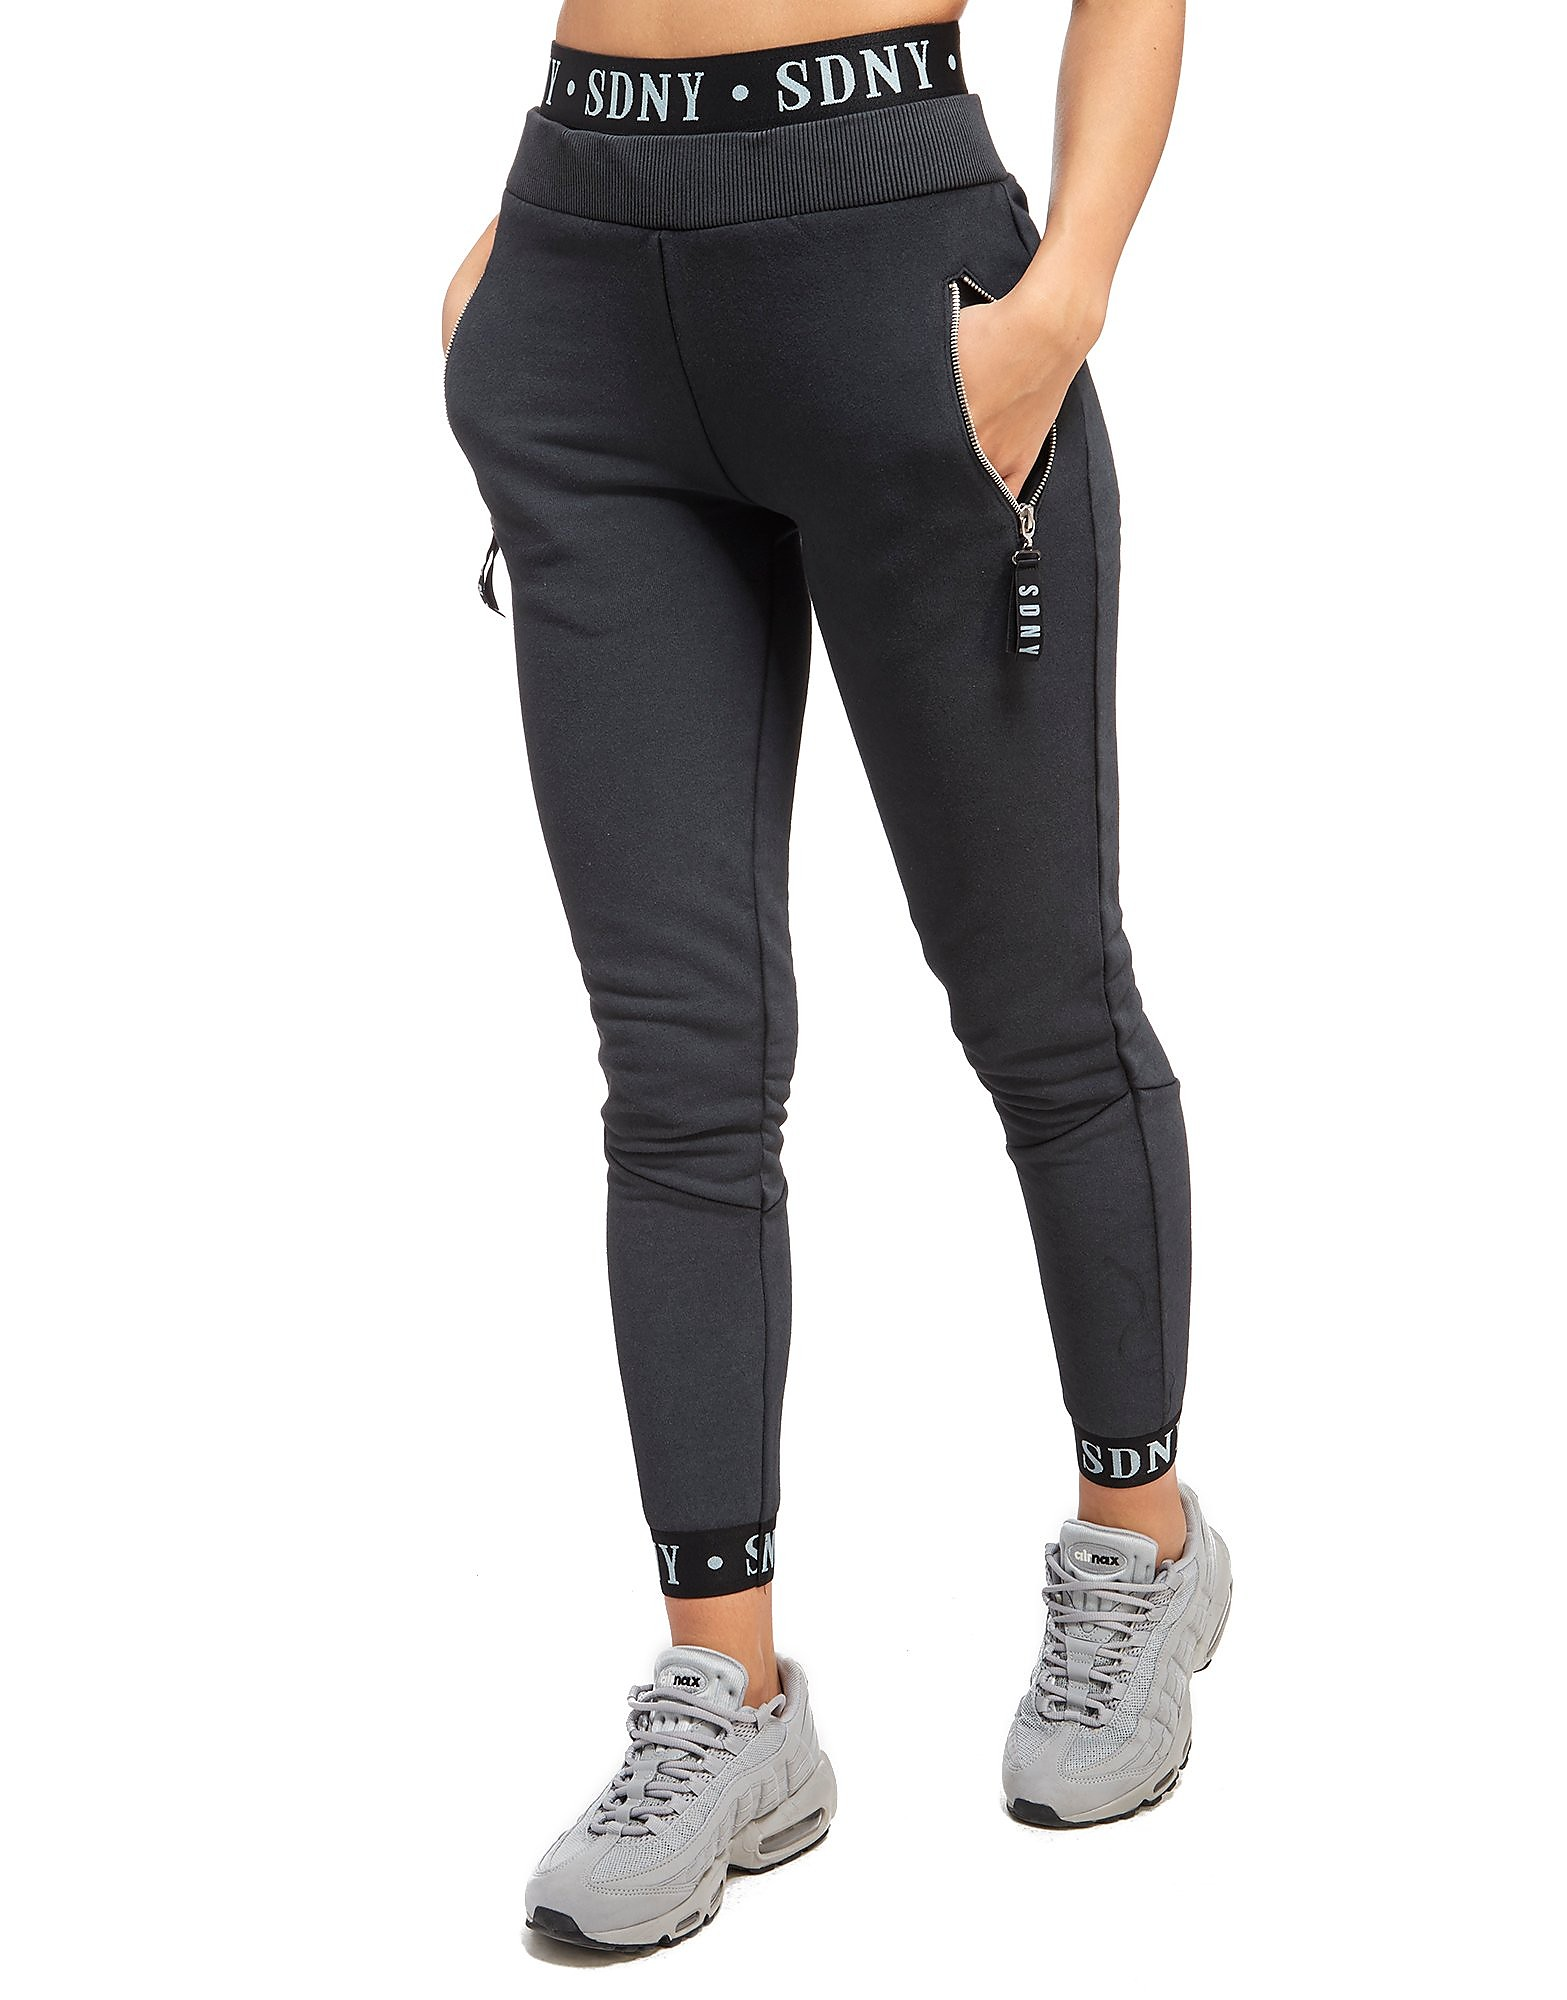 Supply & Demand Pantalon de survêtement Rib Logo Femme